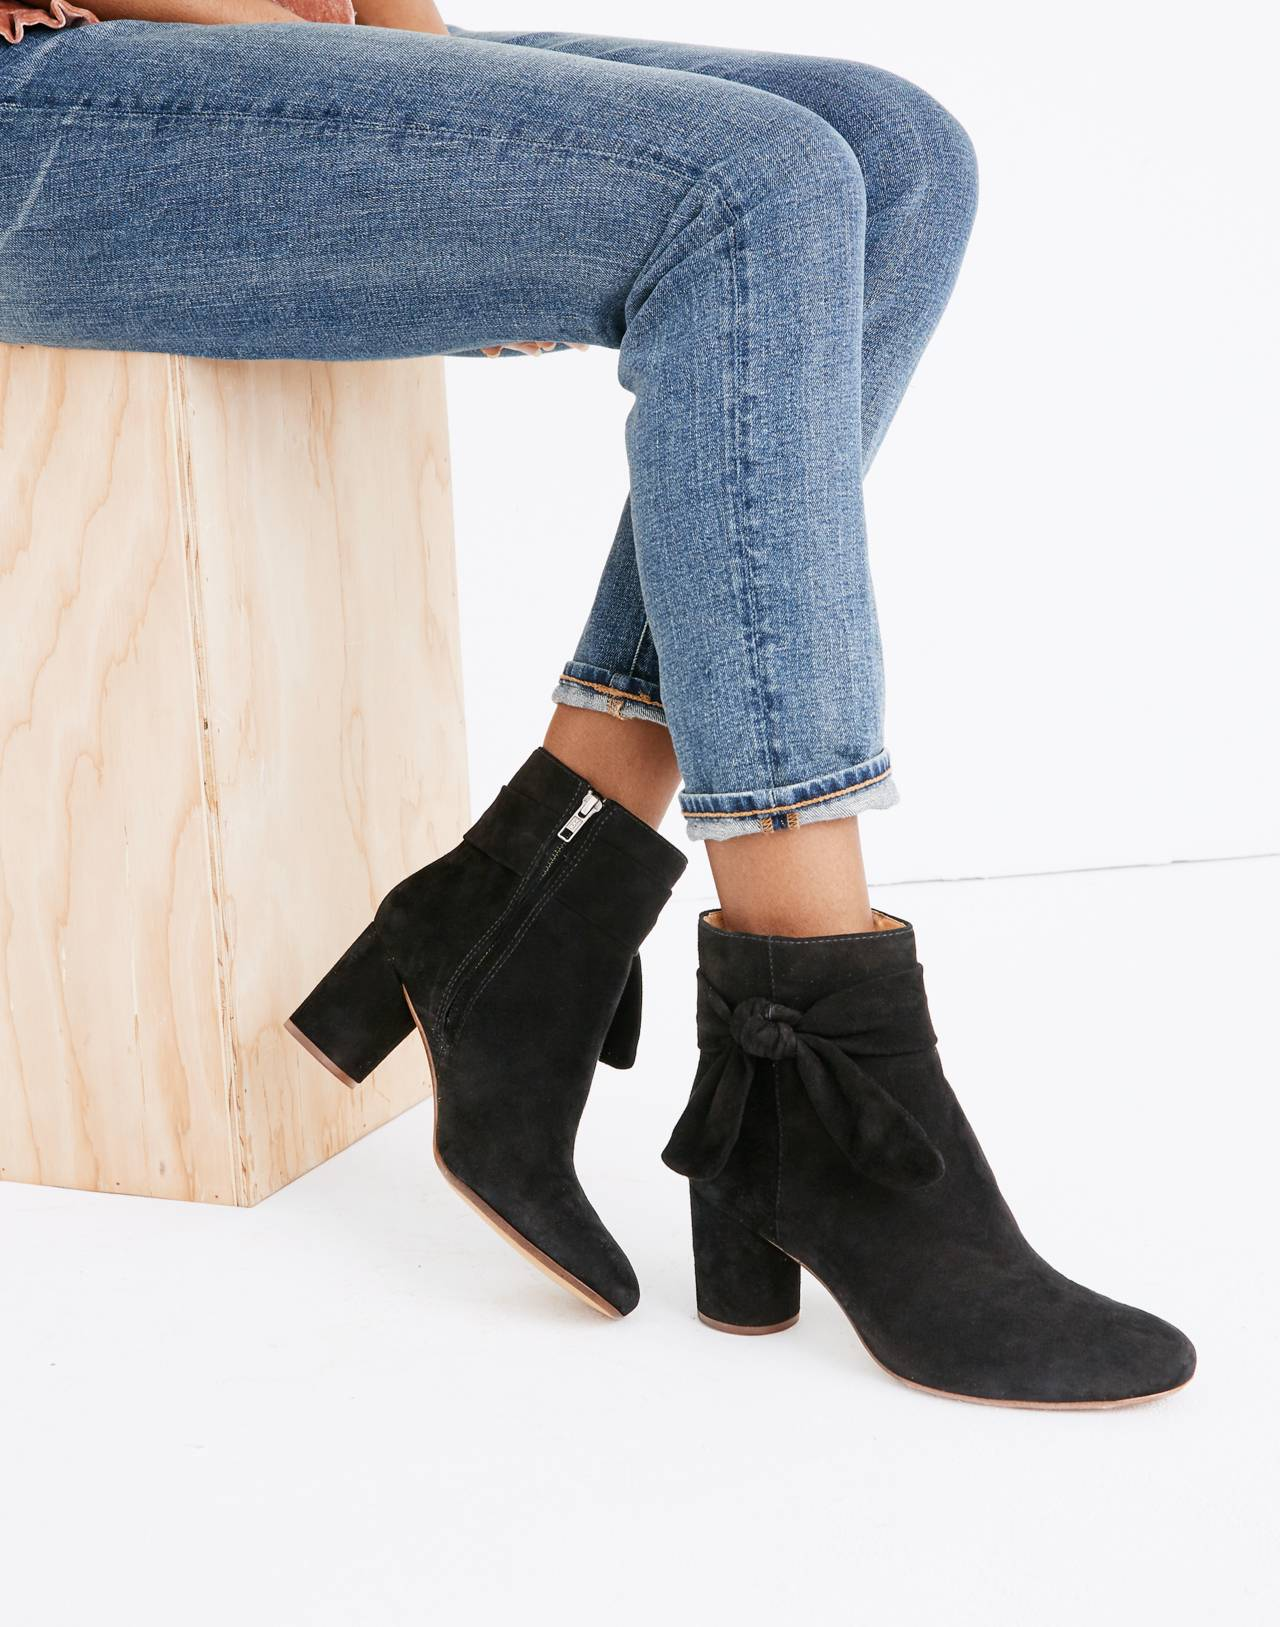 The Esme Bow Boot in Suede in true black image 2